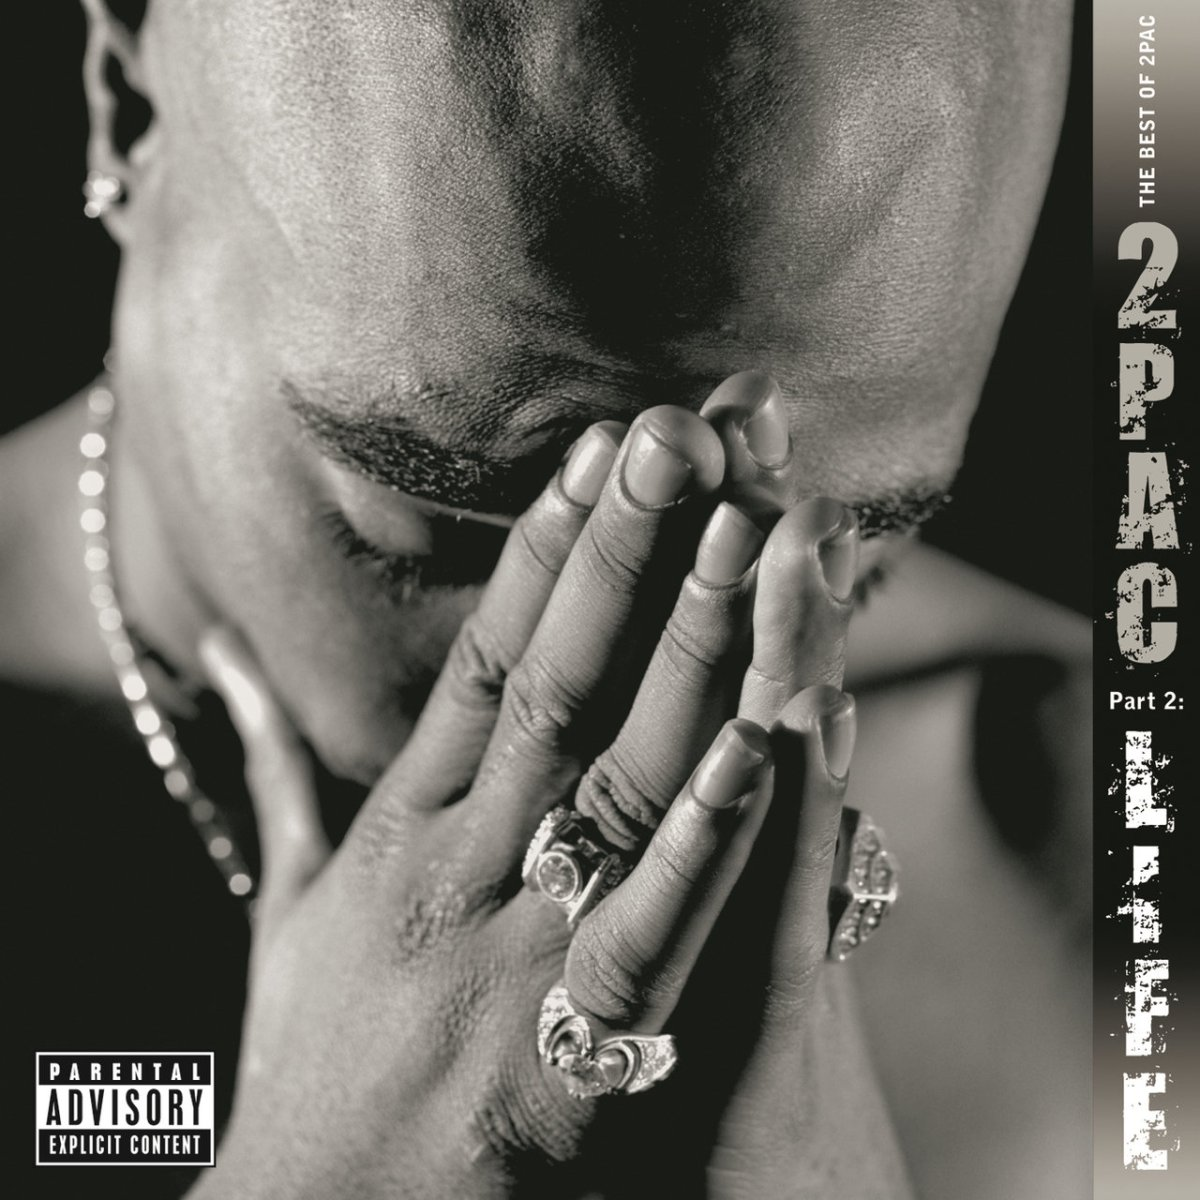 2Pac - The Best Of 2Pac Pt. 2 - Life (Cover)